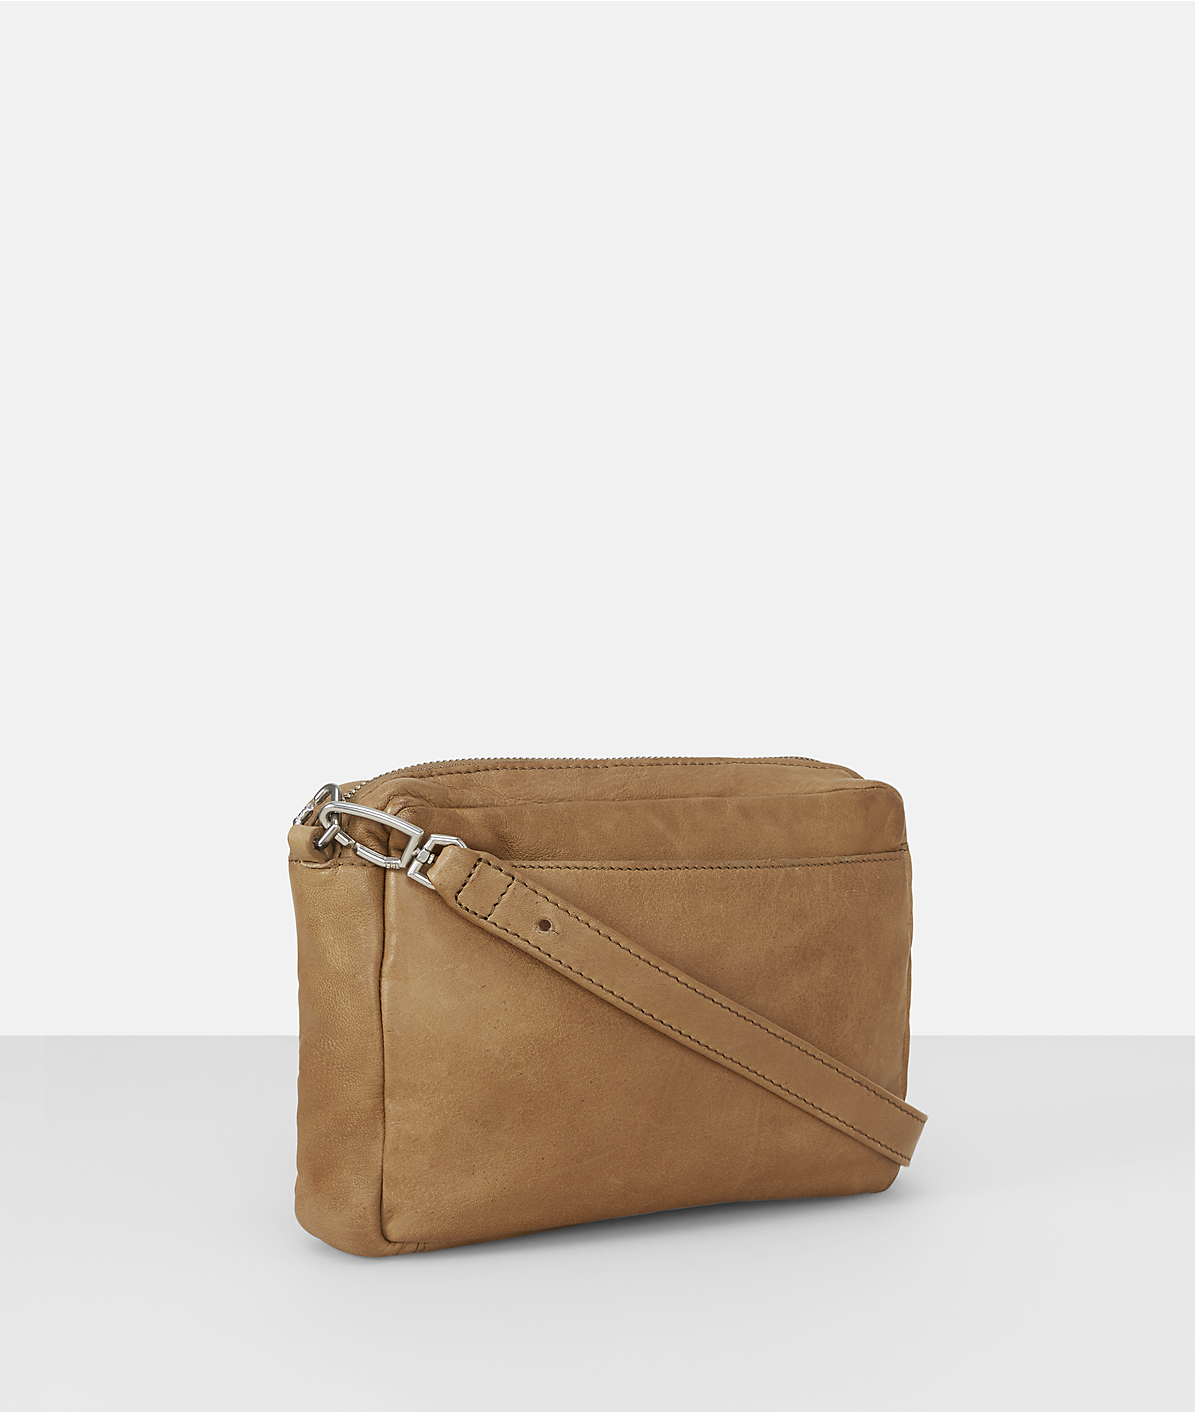 Togo clutch from liebeskind